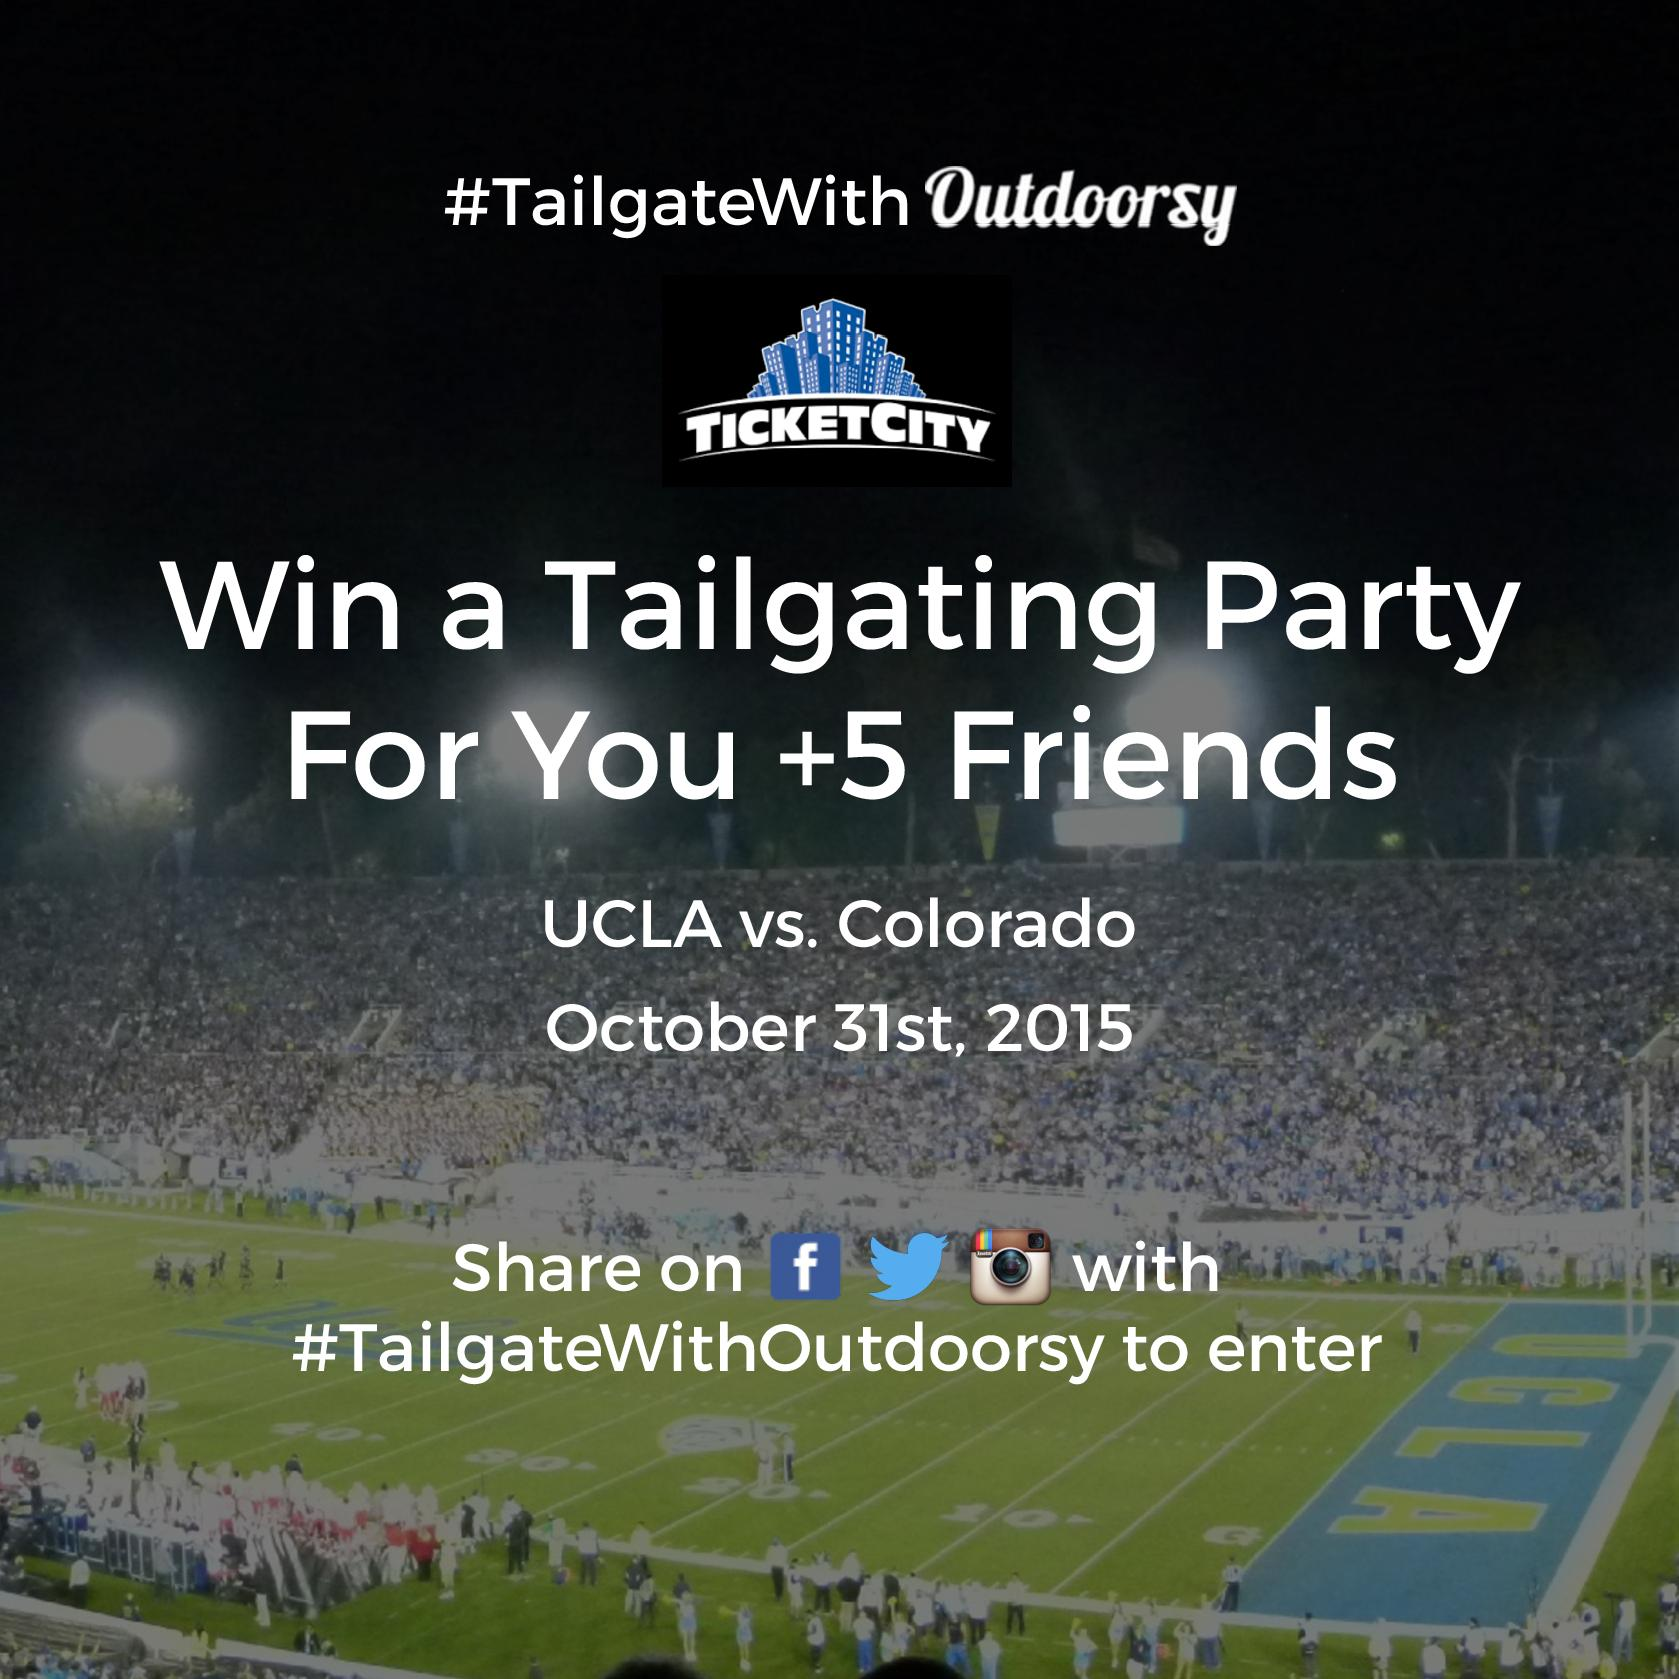 Enter Outdoorsy's ultimate tailgating giveaway